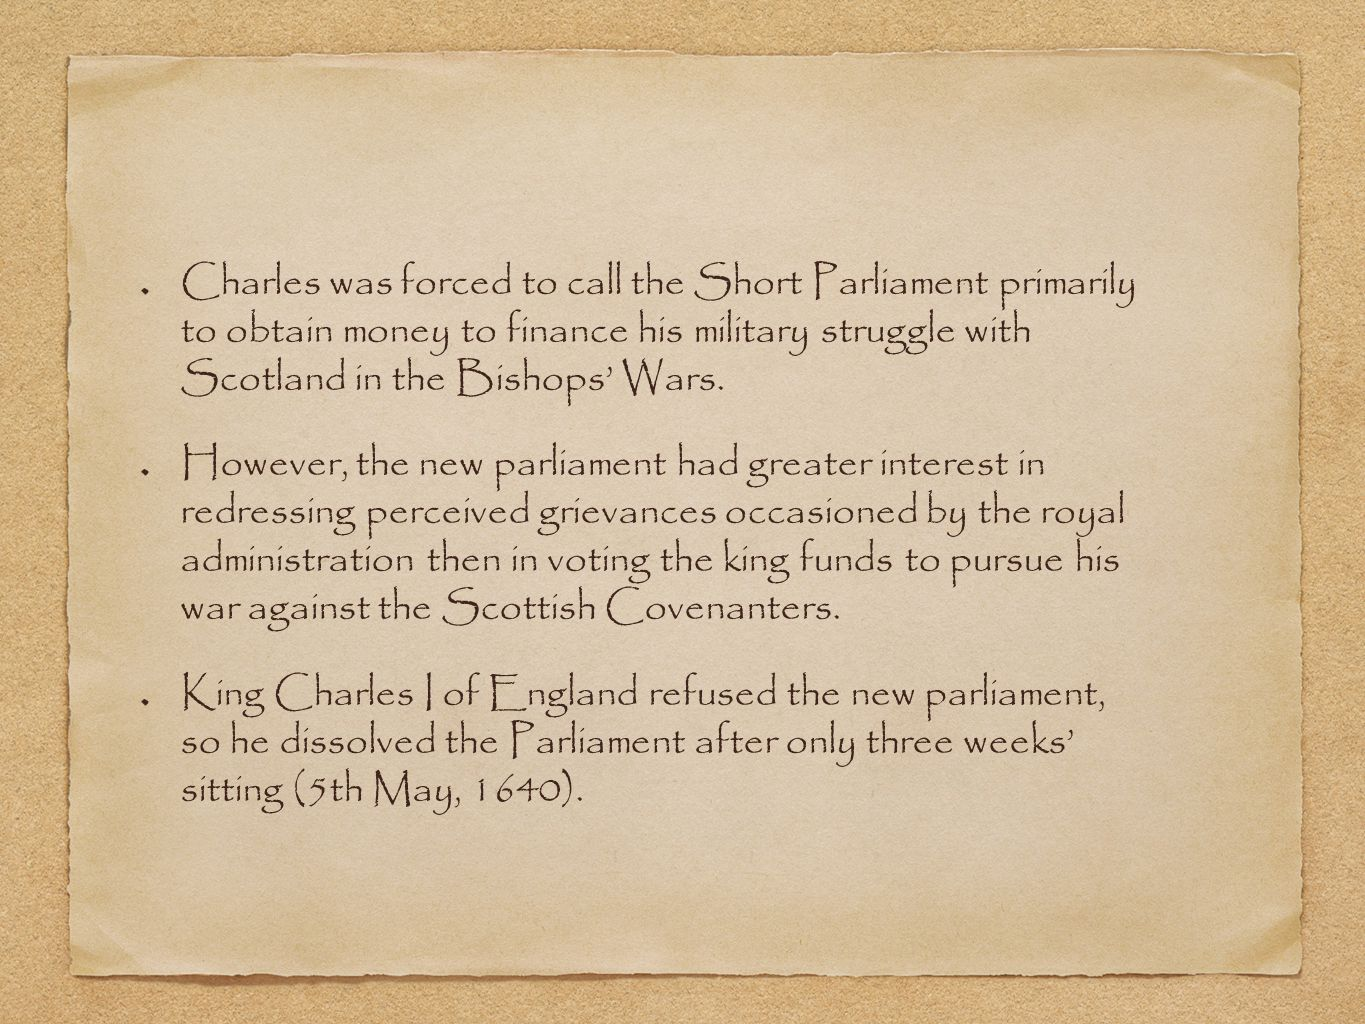 Charles was forced to call the Short Parliament primarily to obtain money to finance his military struggle with Scotland in the Bishops' Wars.